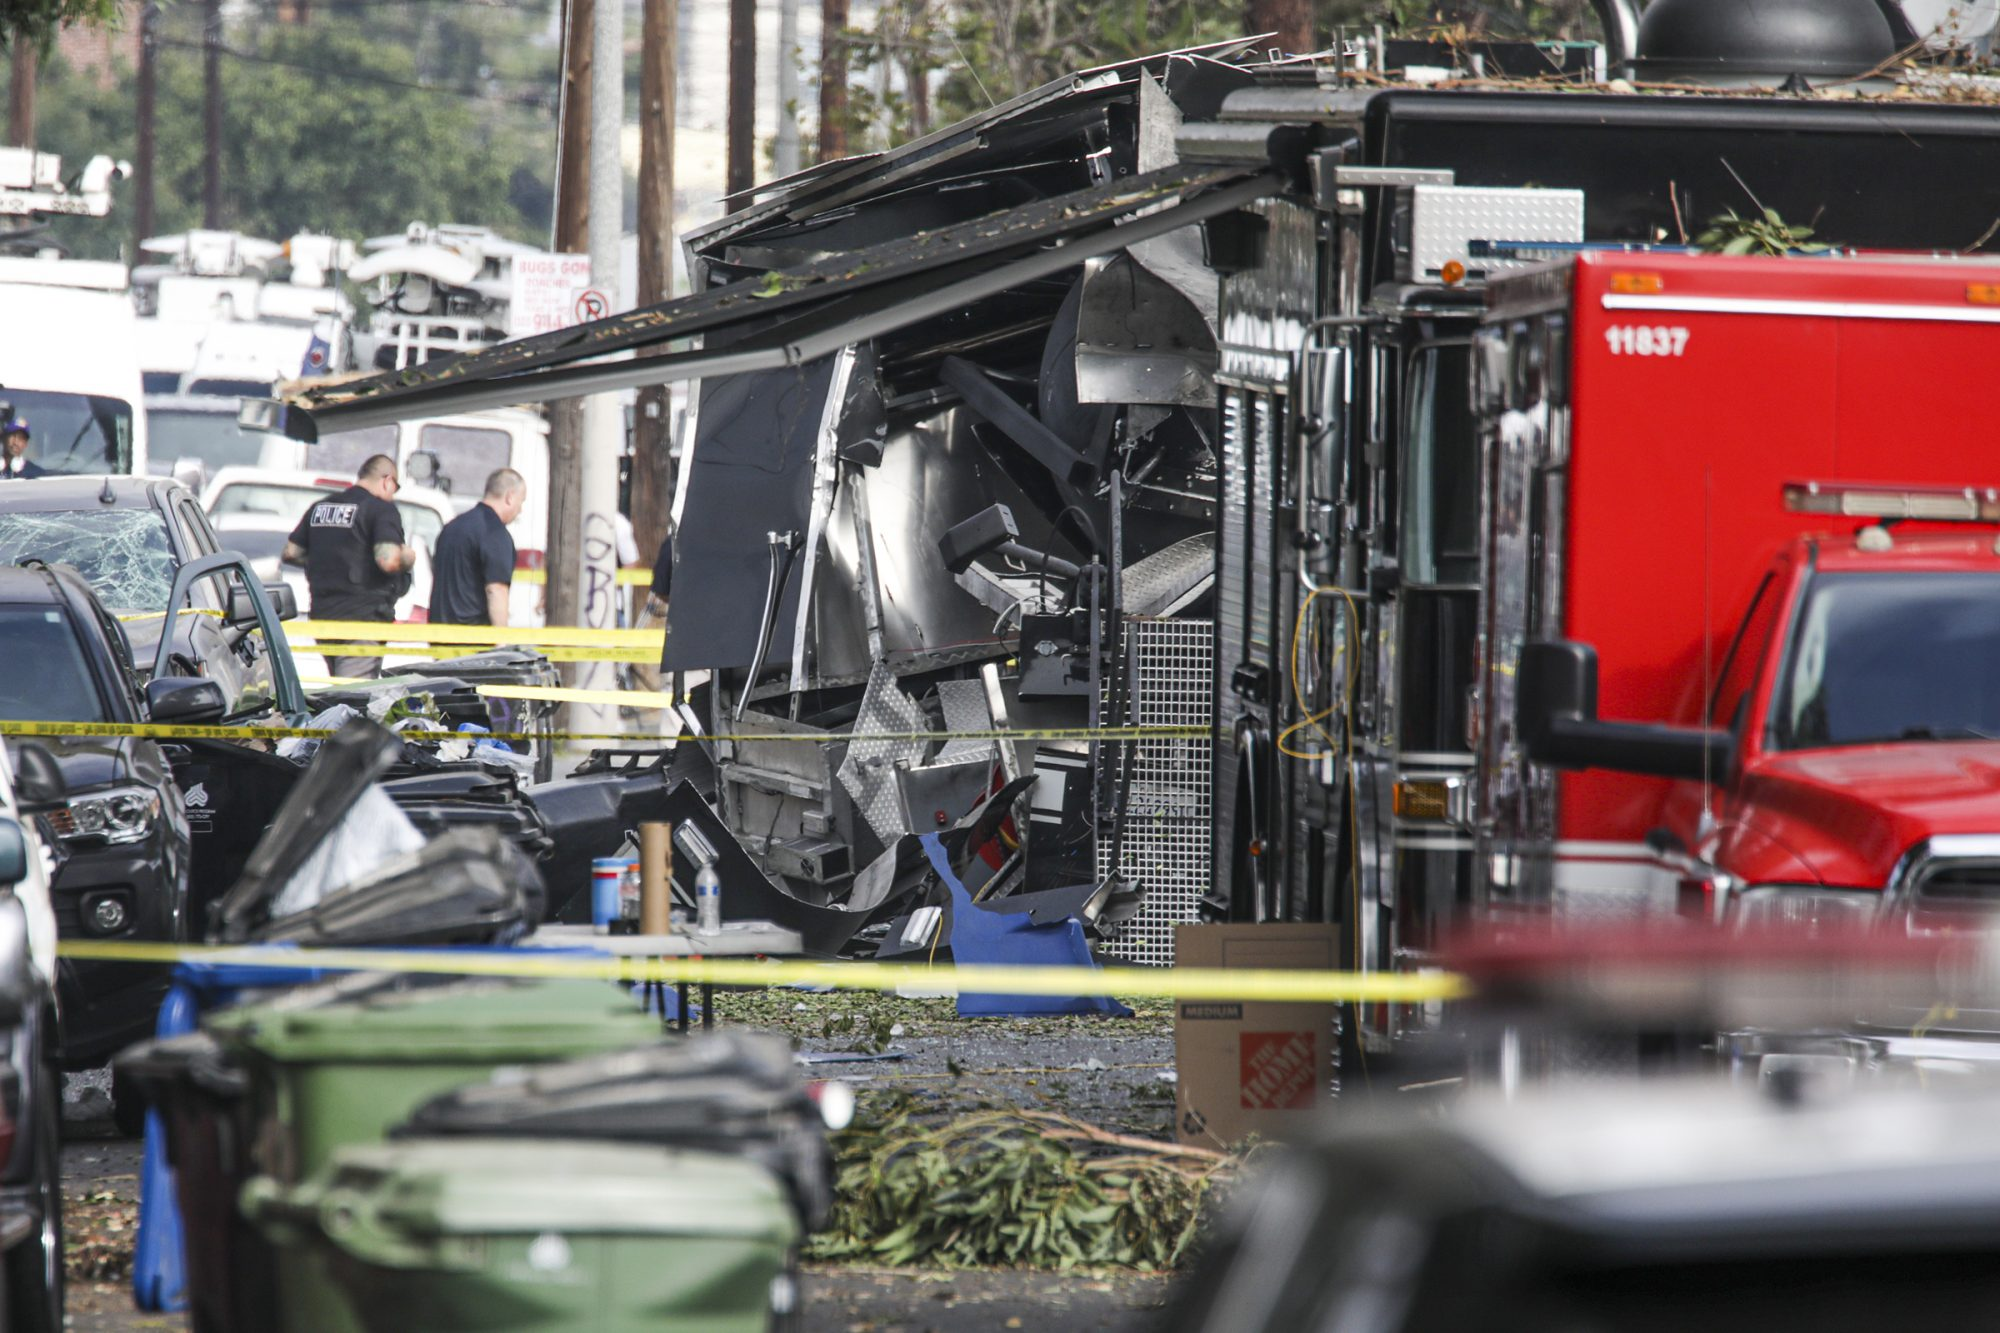 Fireworks explosion injures 17 people, including 10 law-enforcement officers in Los Angeles.